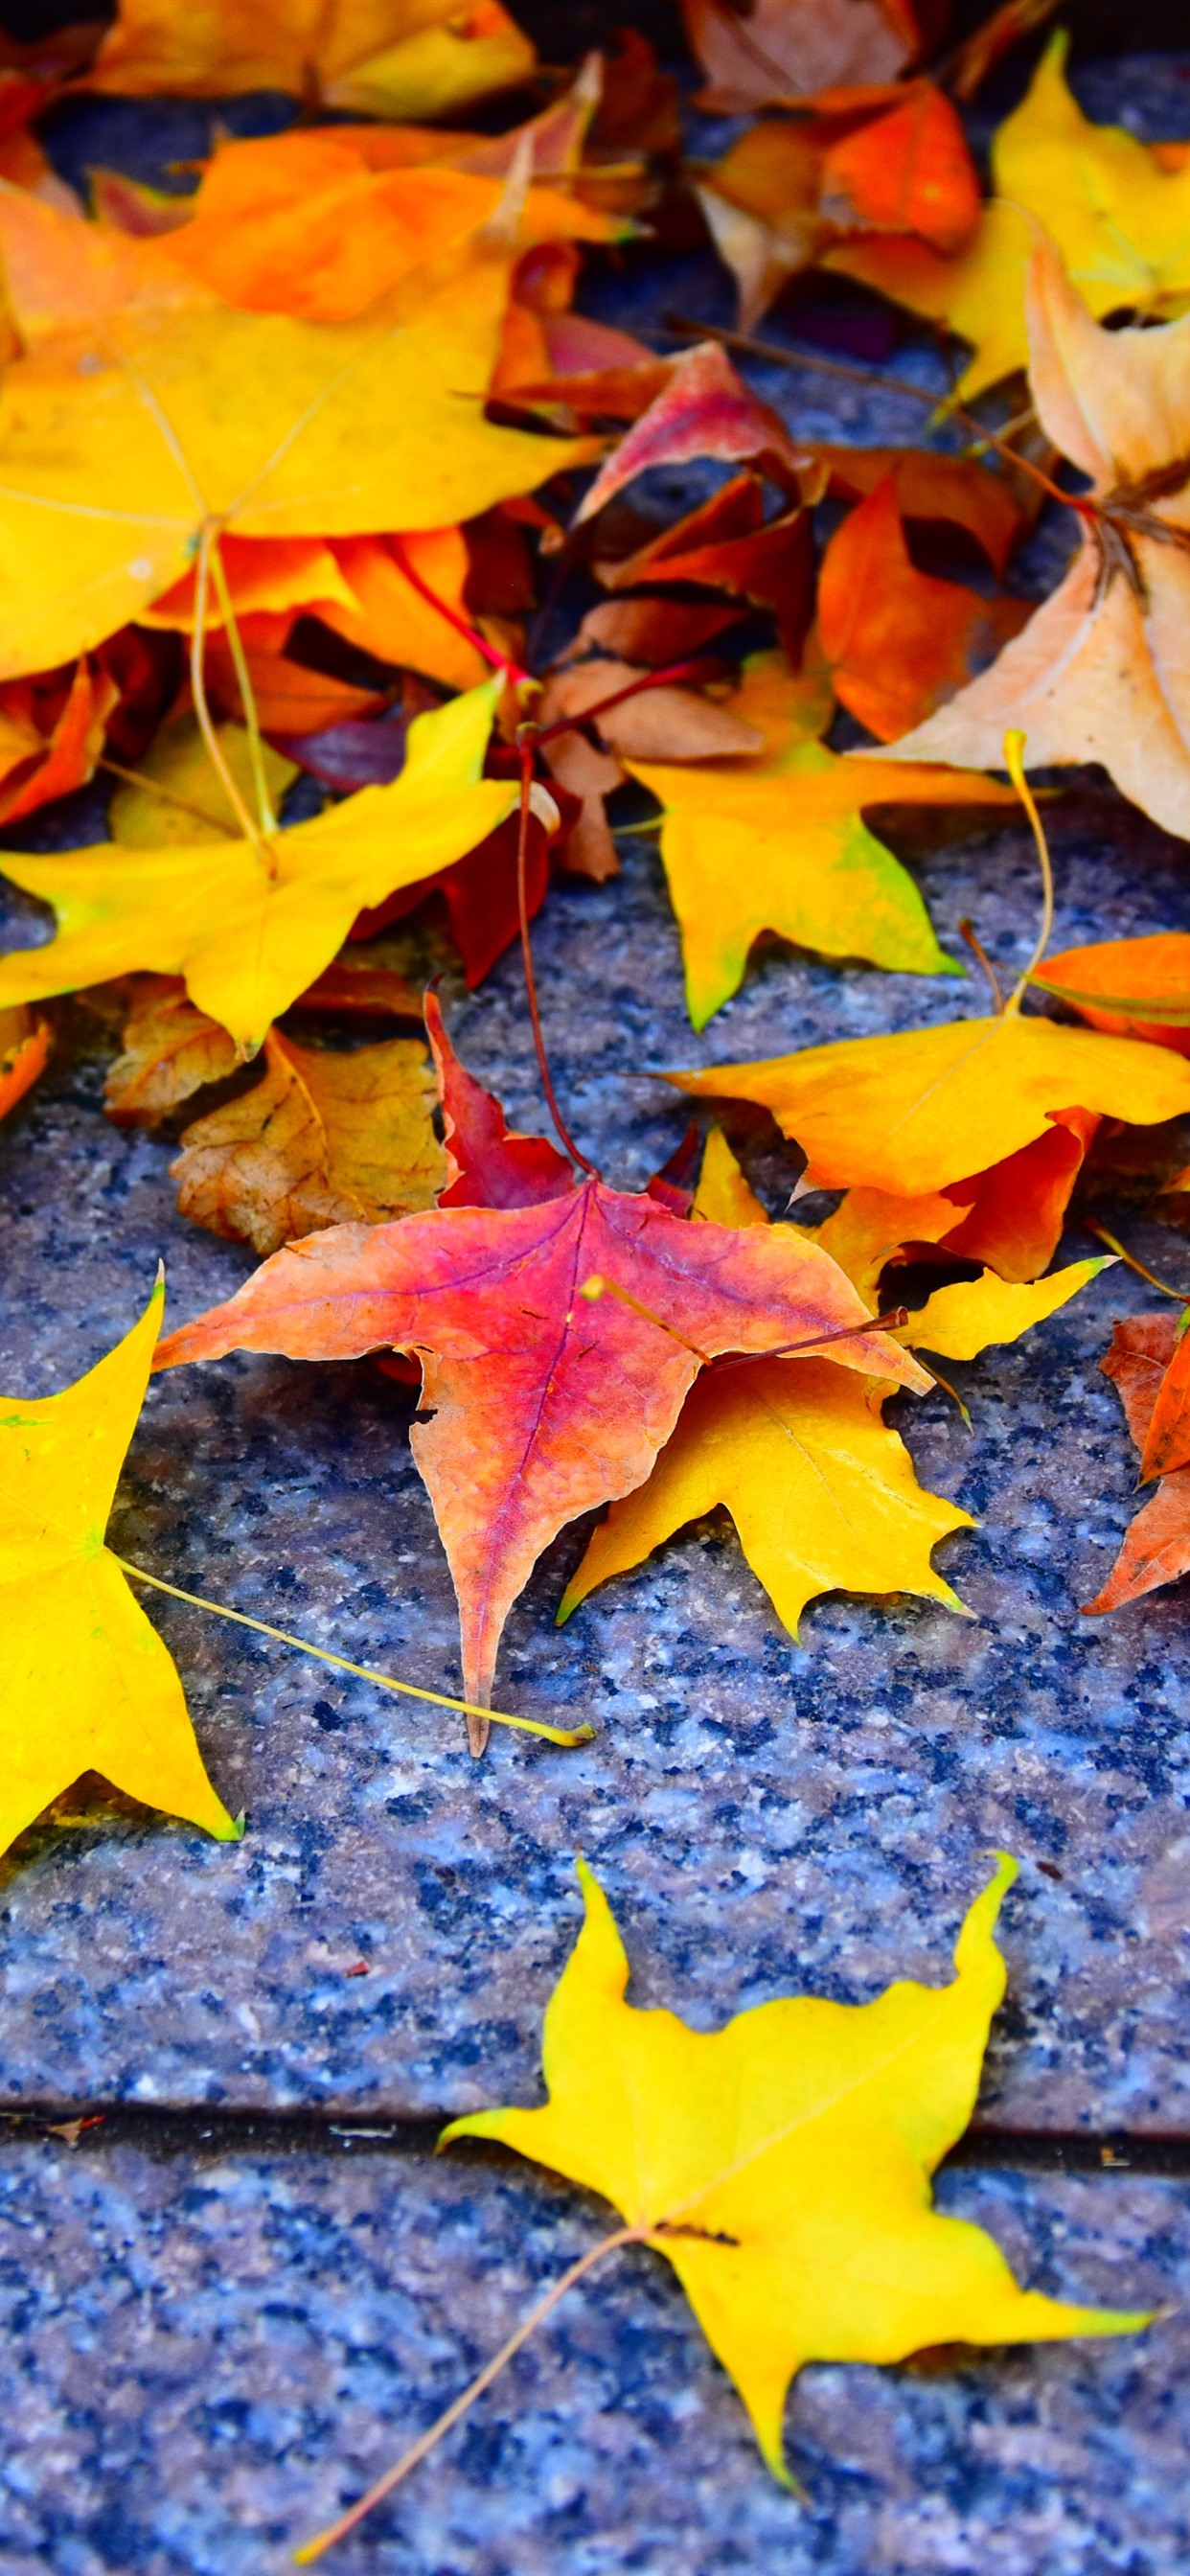 Yellow And Red Maple Leaves Ground 1242x2688 Iphone 11 Pro Xs Max Wallpaper Background Picture Image